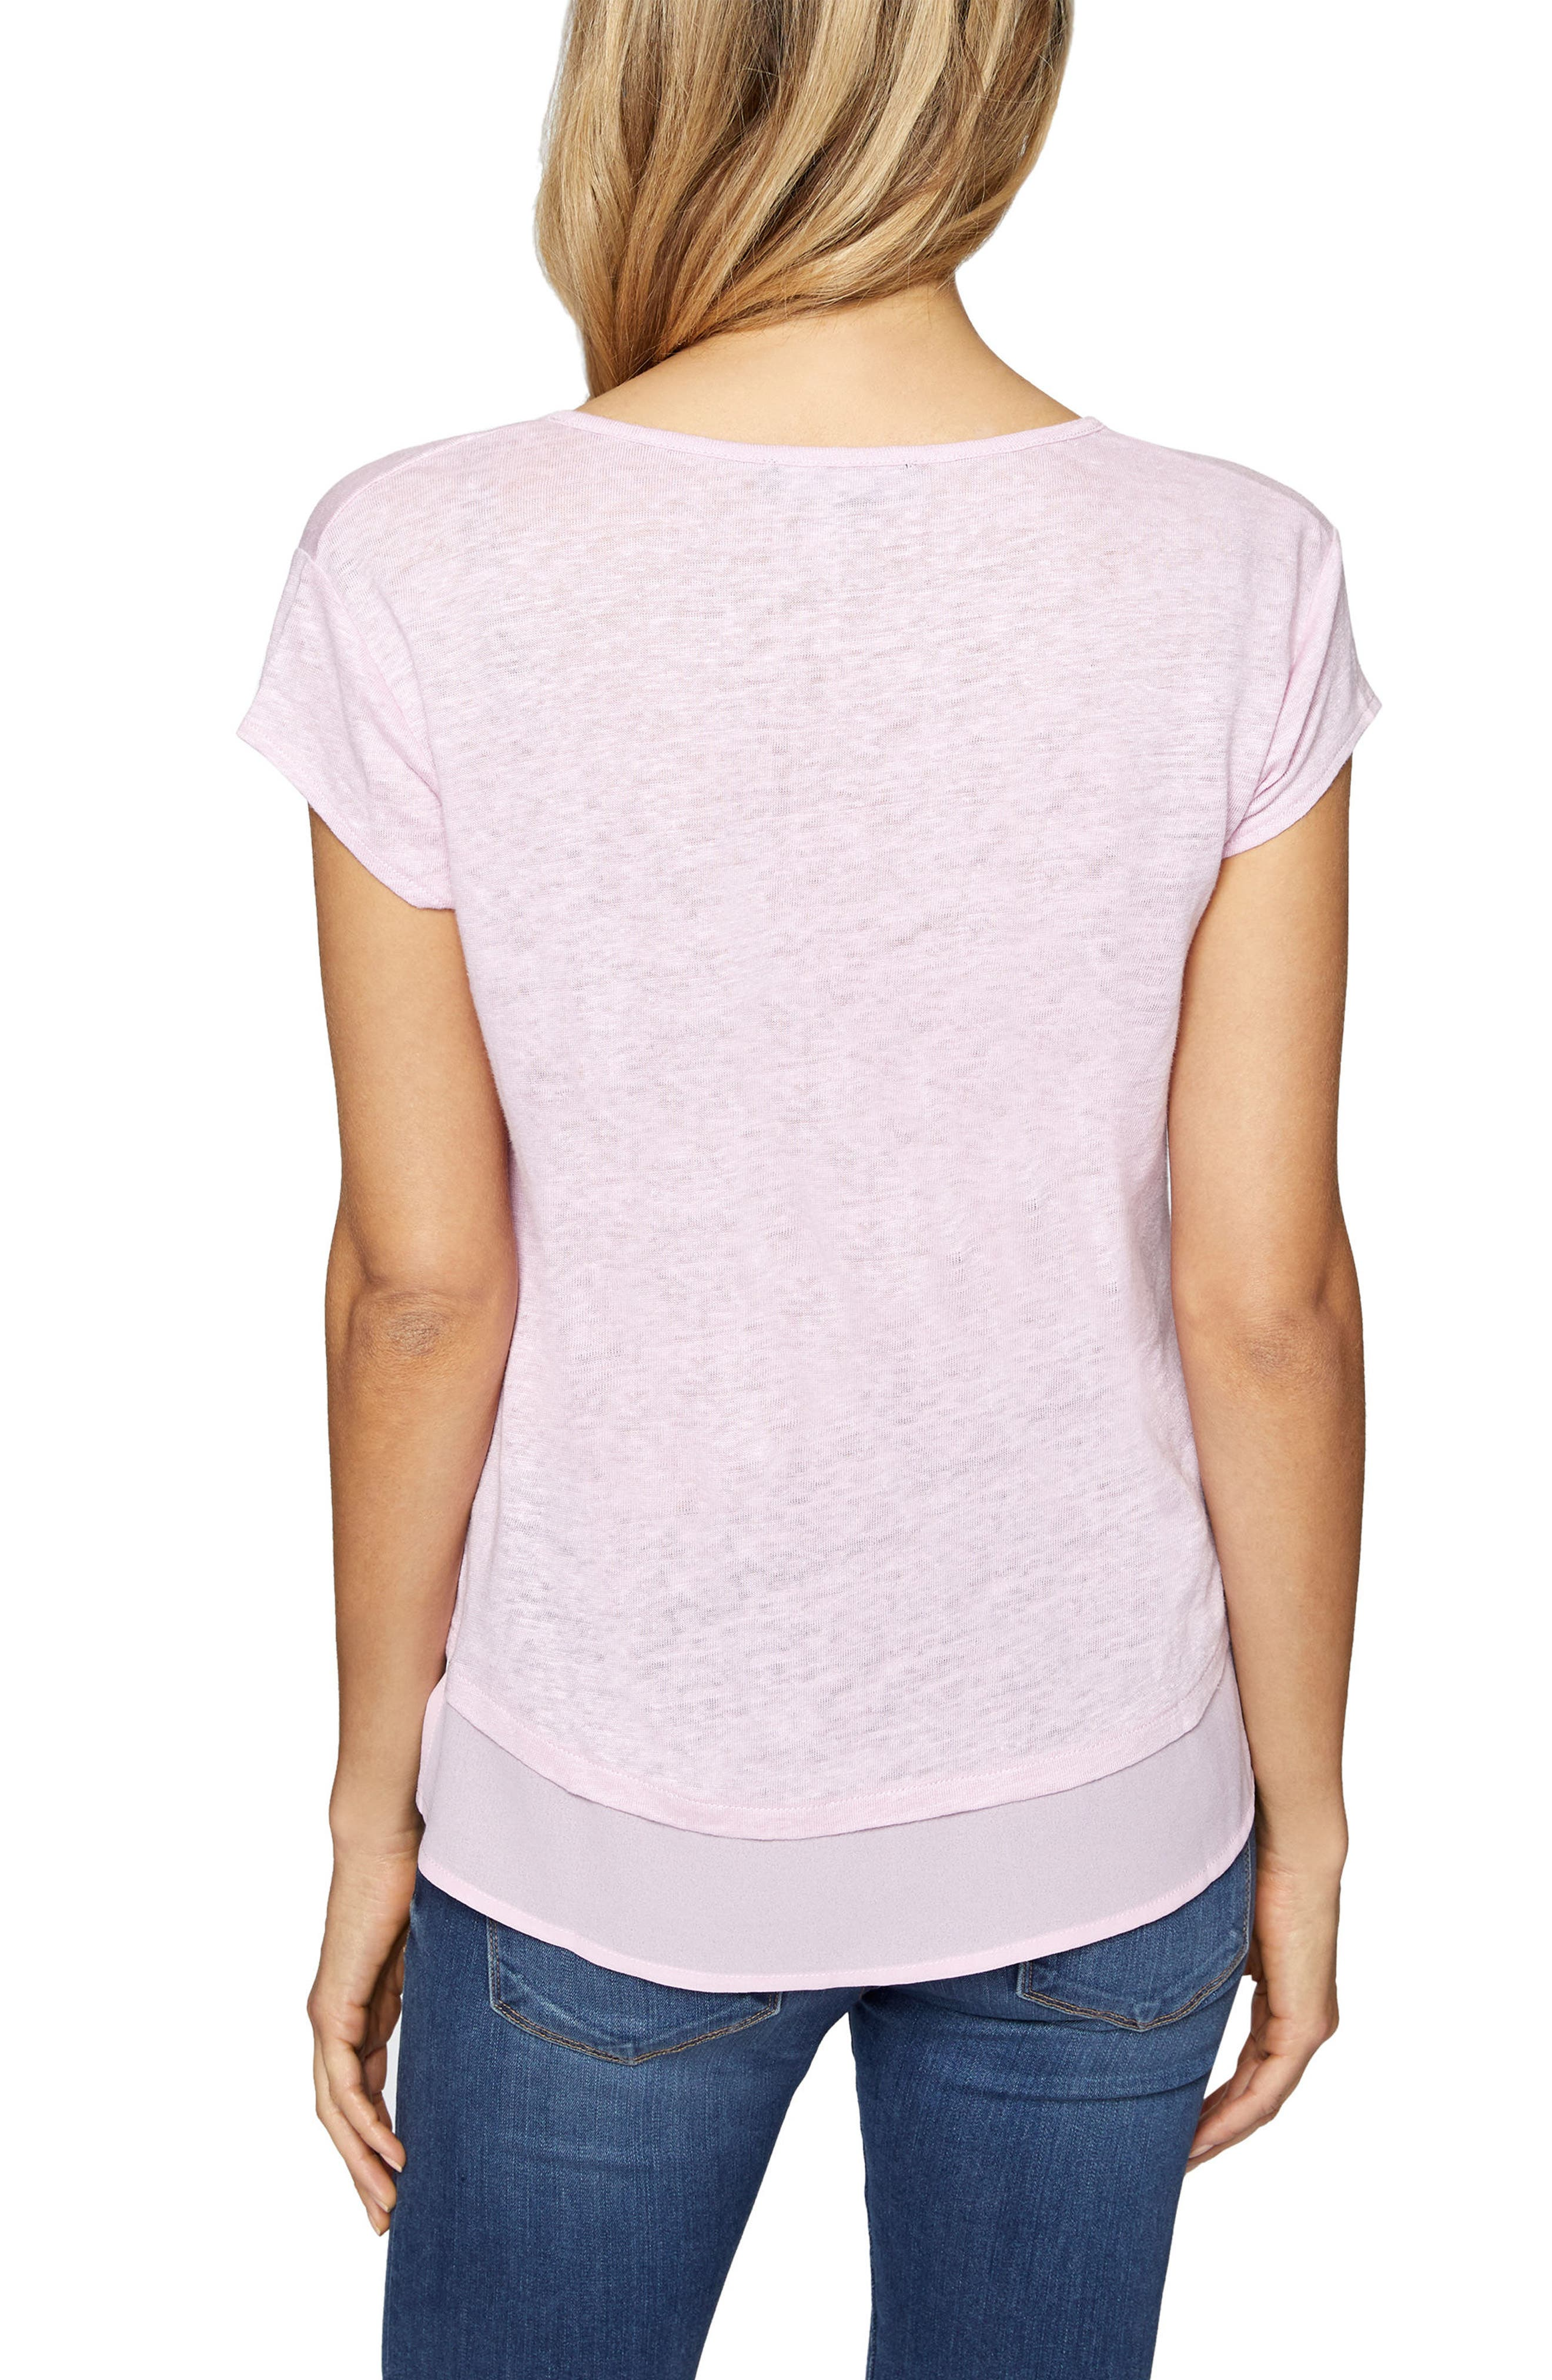 City Mix Layered Look Tee,                             Alternate thumbnail 31, color,